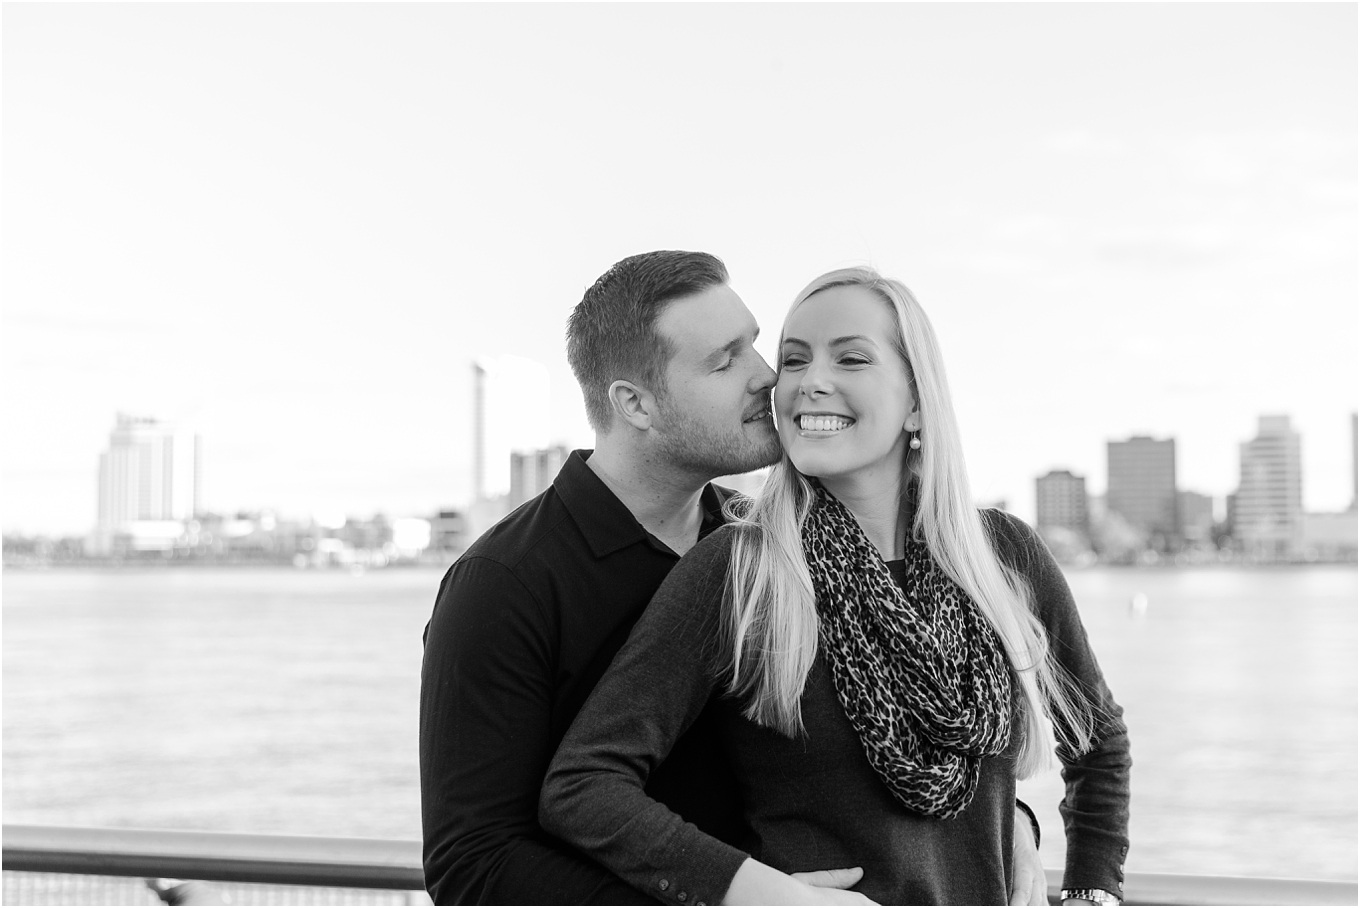 best-of-2016-engagement-photos-with-courtney-carolyn-photography-romantic-timeless-candid-wedding-photographer-in-detroit-mi_0031.jpg